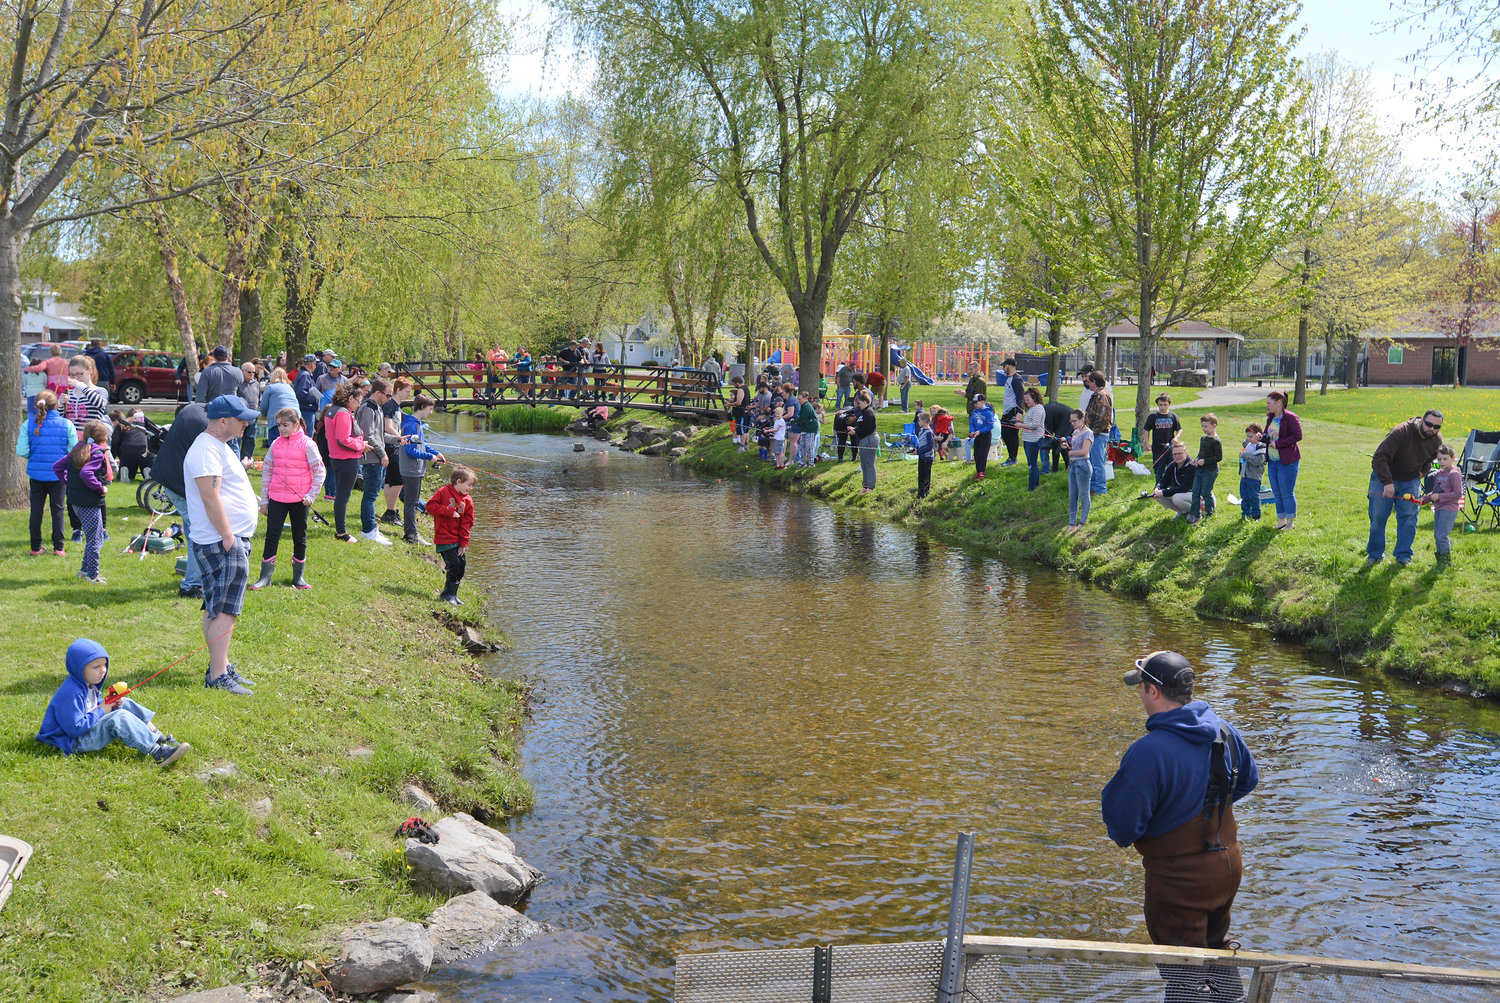 FAMILY FISHING — About 90 anglers gather at Wood Creek in the Rick LeFevre Fishing Derby at Guyer Field on Saturday. The annual event is conducted by the Rome Parks and Recreation Department with support and collaboration with the Rome Fish Hatchery. The event is named for the late Rick LeFevre, revered for his contributions to youth sports with the Recreation Department, including with youth hockey and skating at J.F. Kennedy Civic Arena. Additional photos, page 2 and online at www.romesentinel.com.